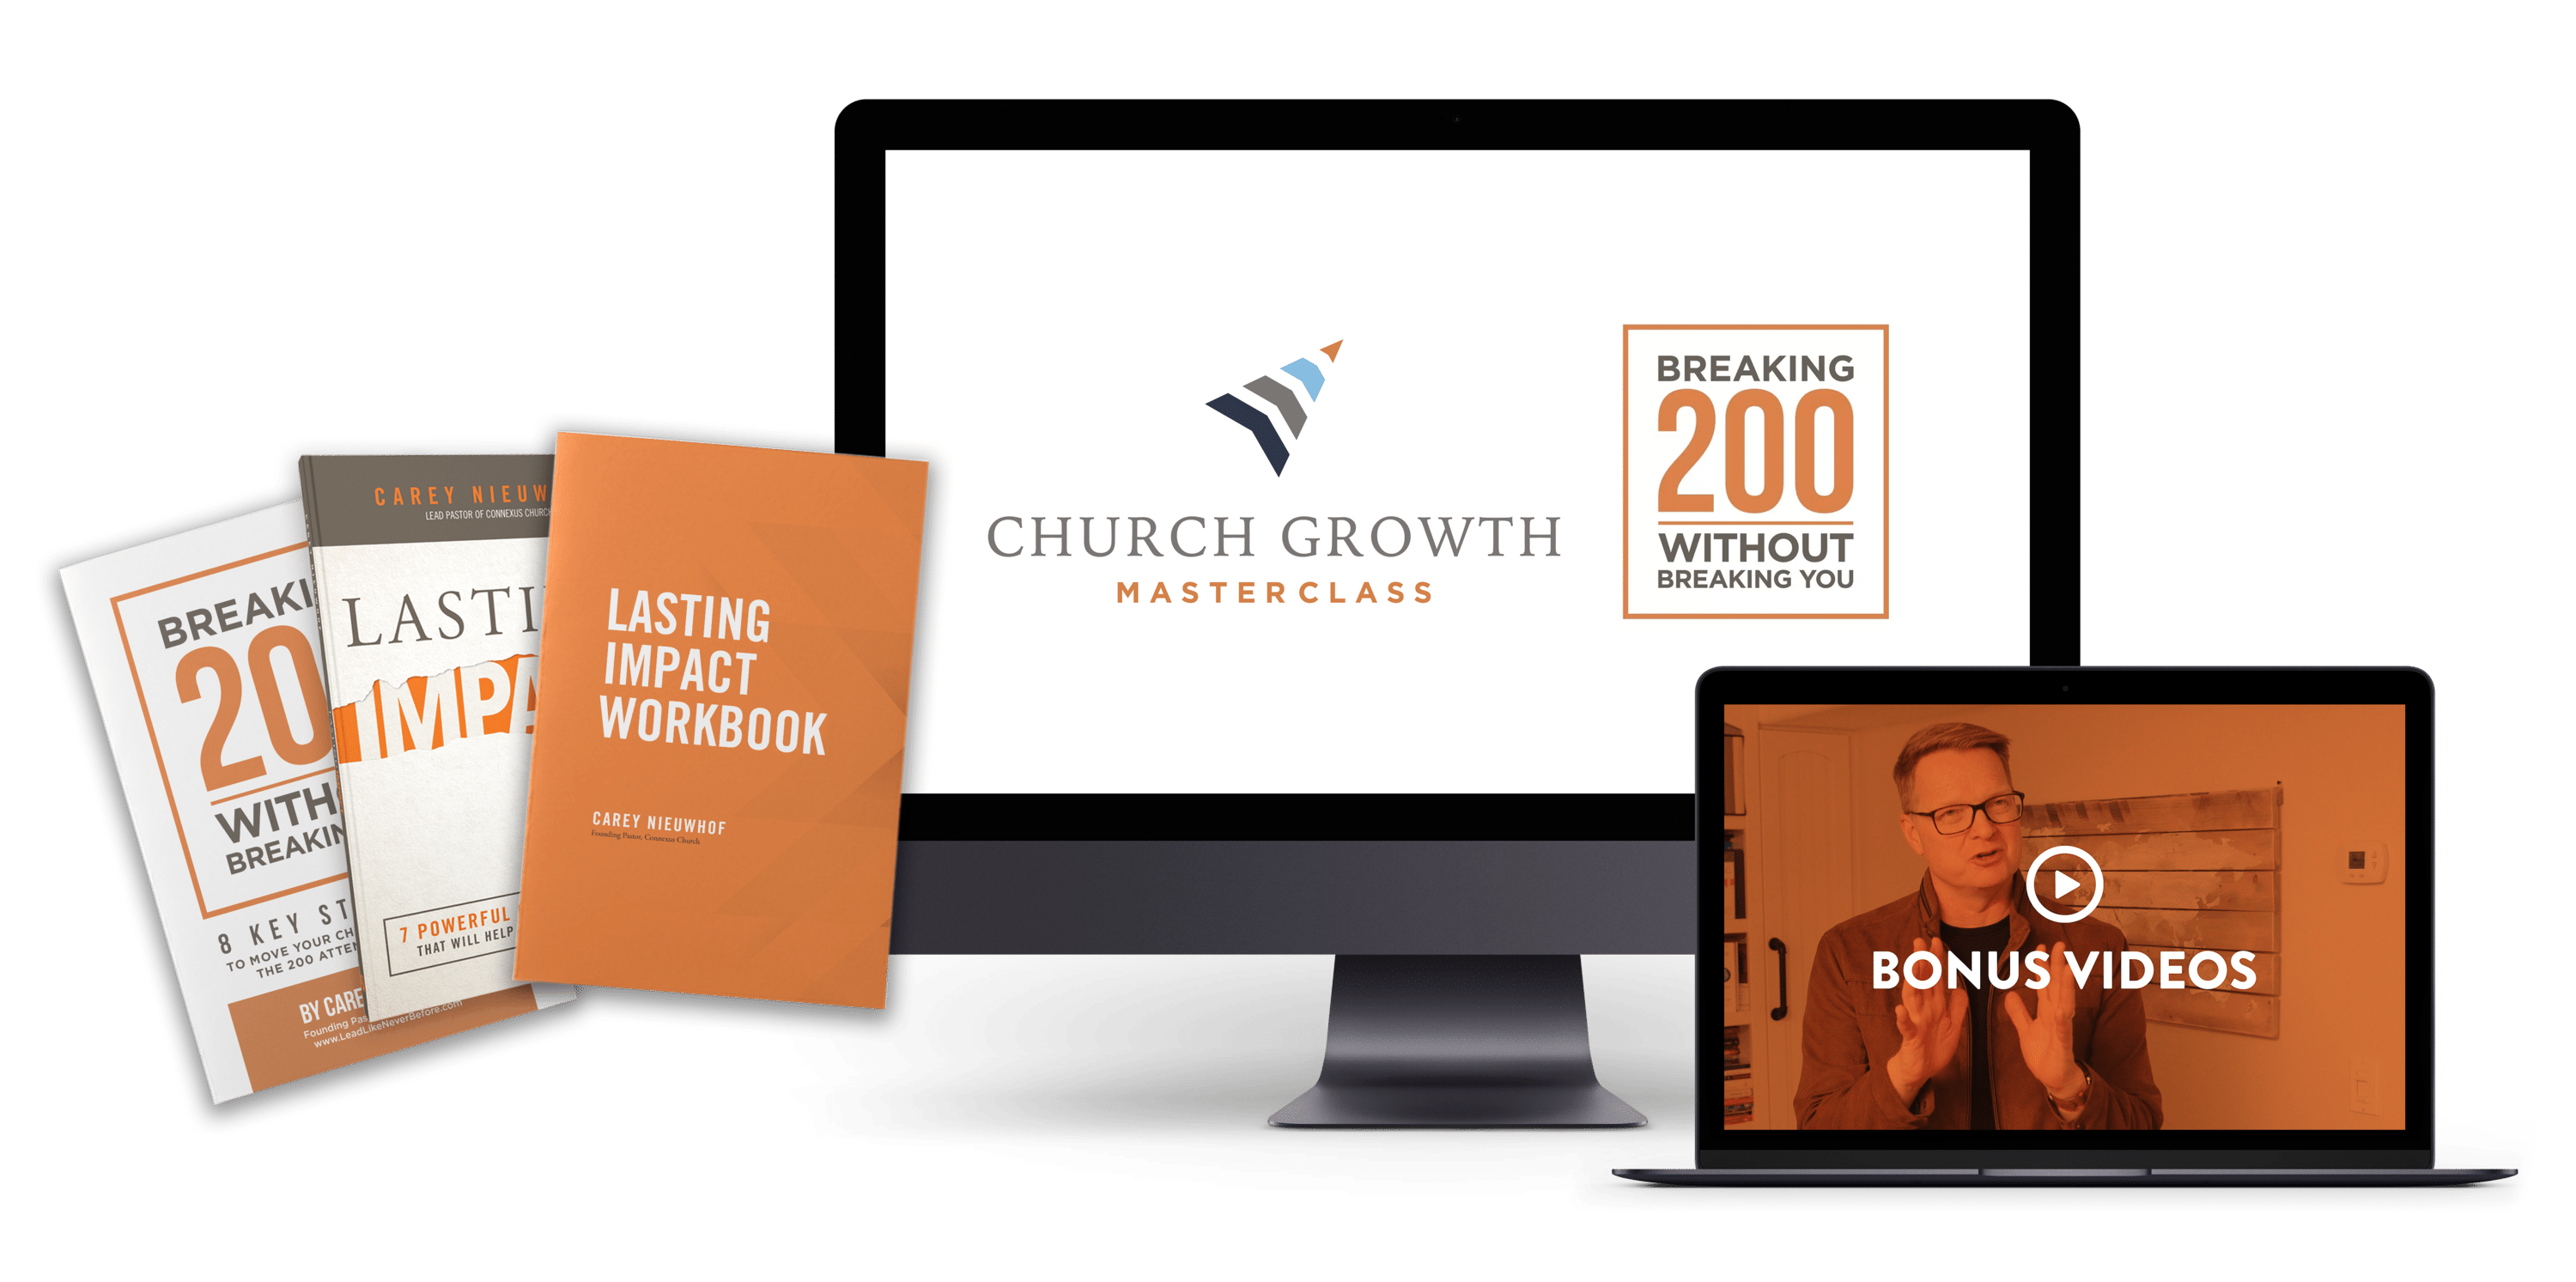 Church Growth Masterclass